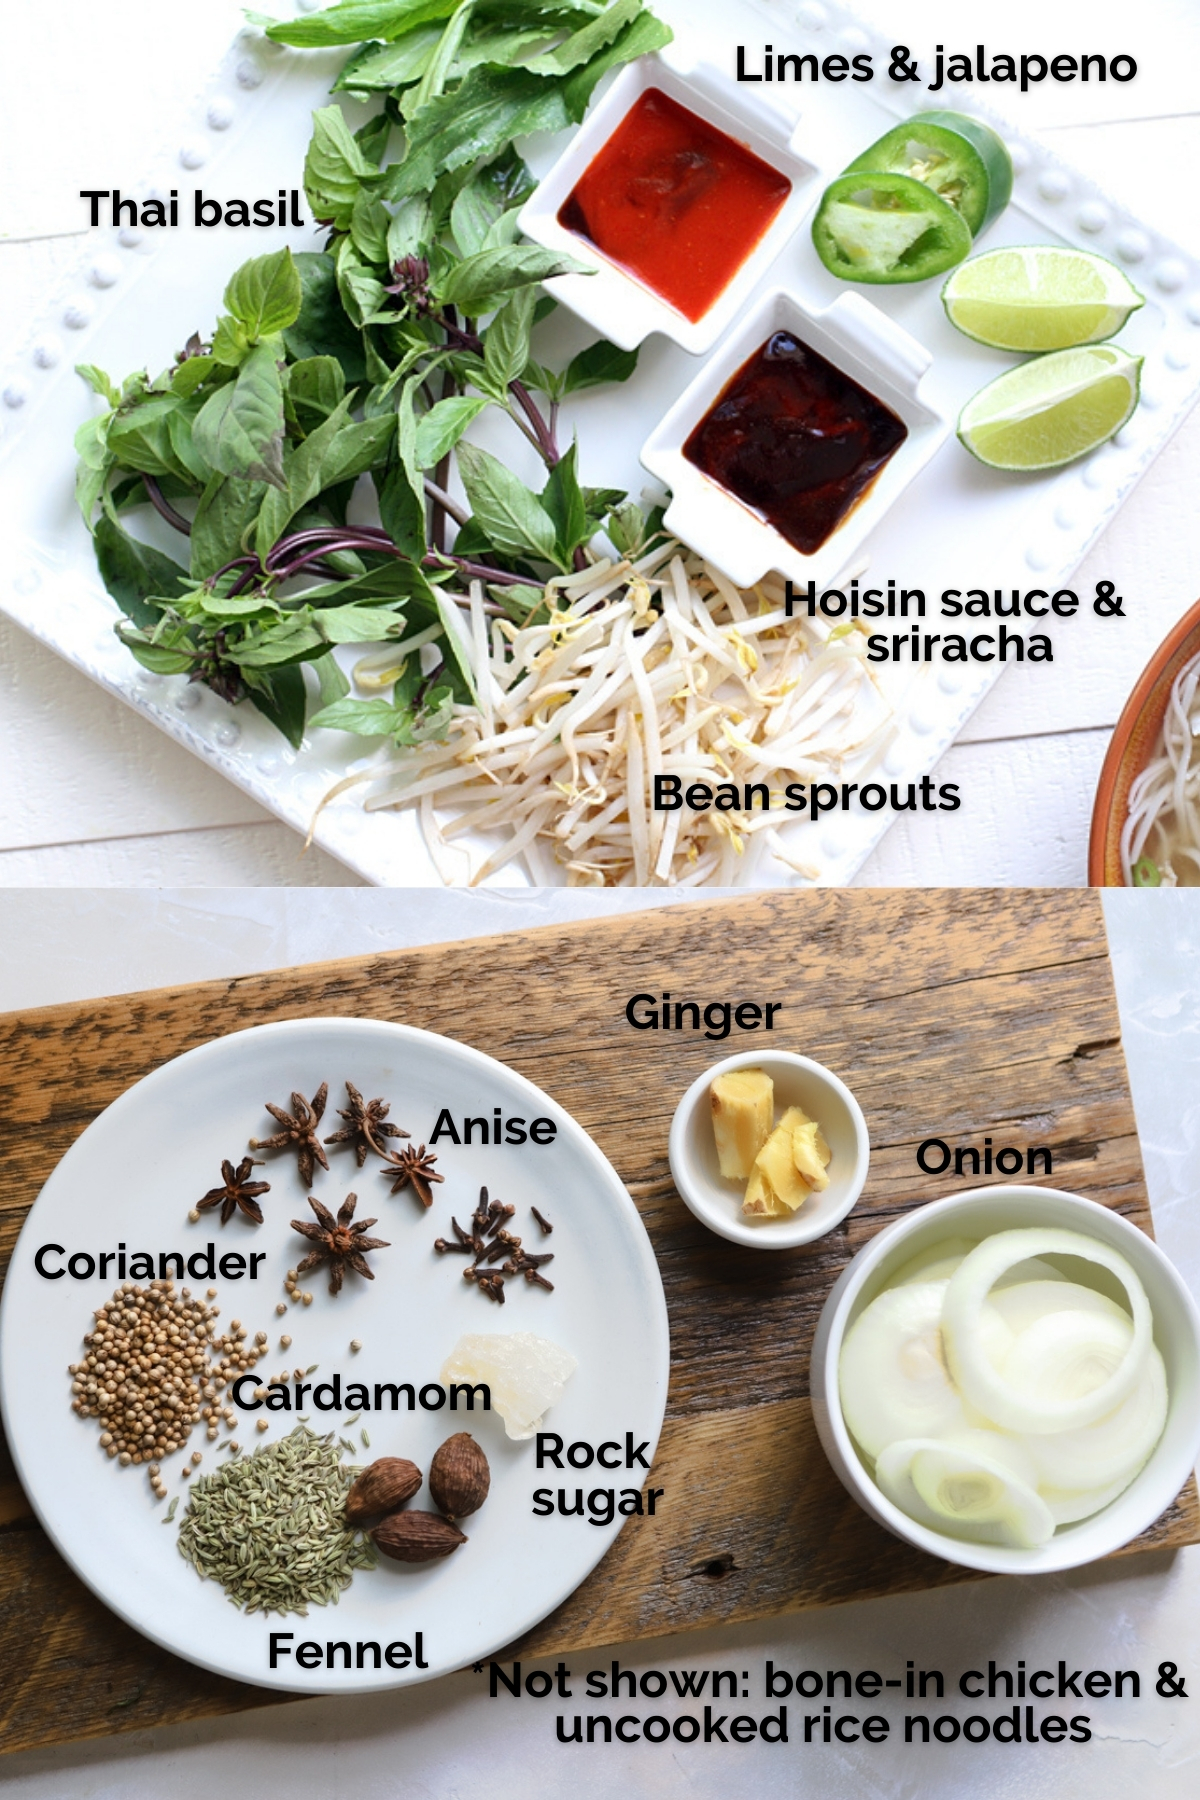 ingredients on a white plate and wood board to make pho ga